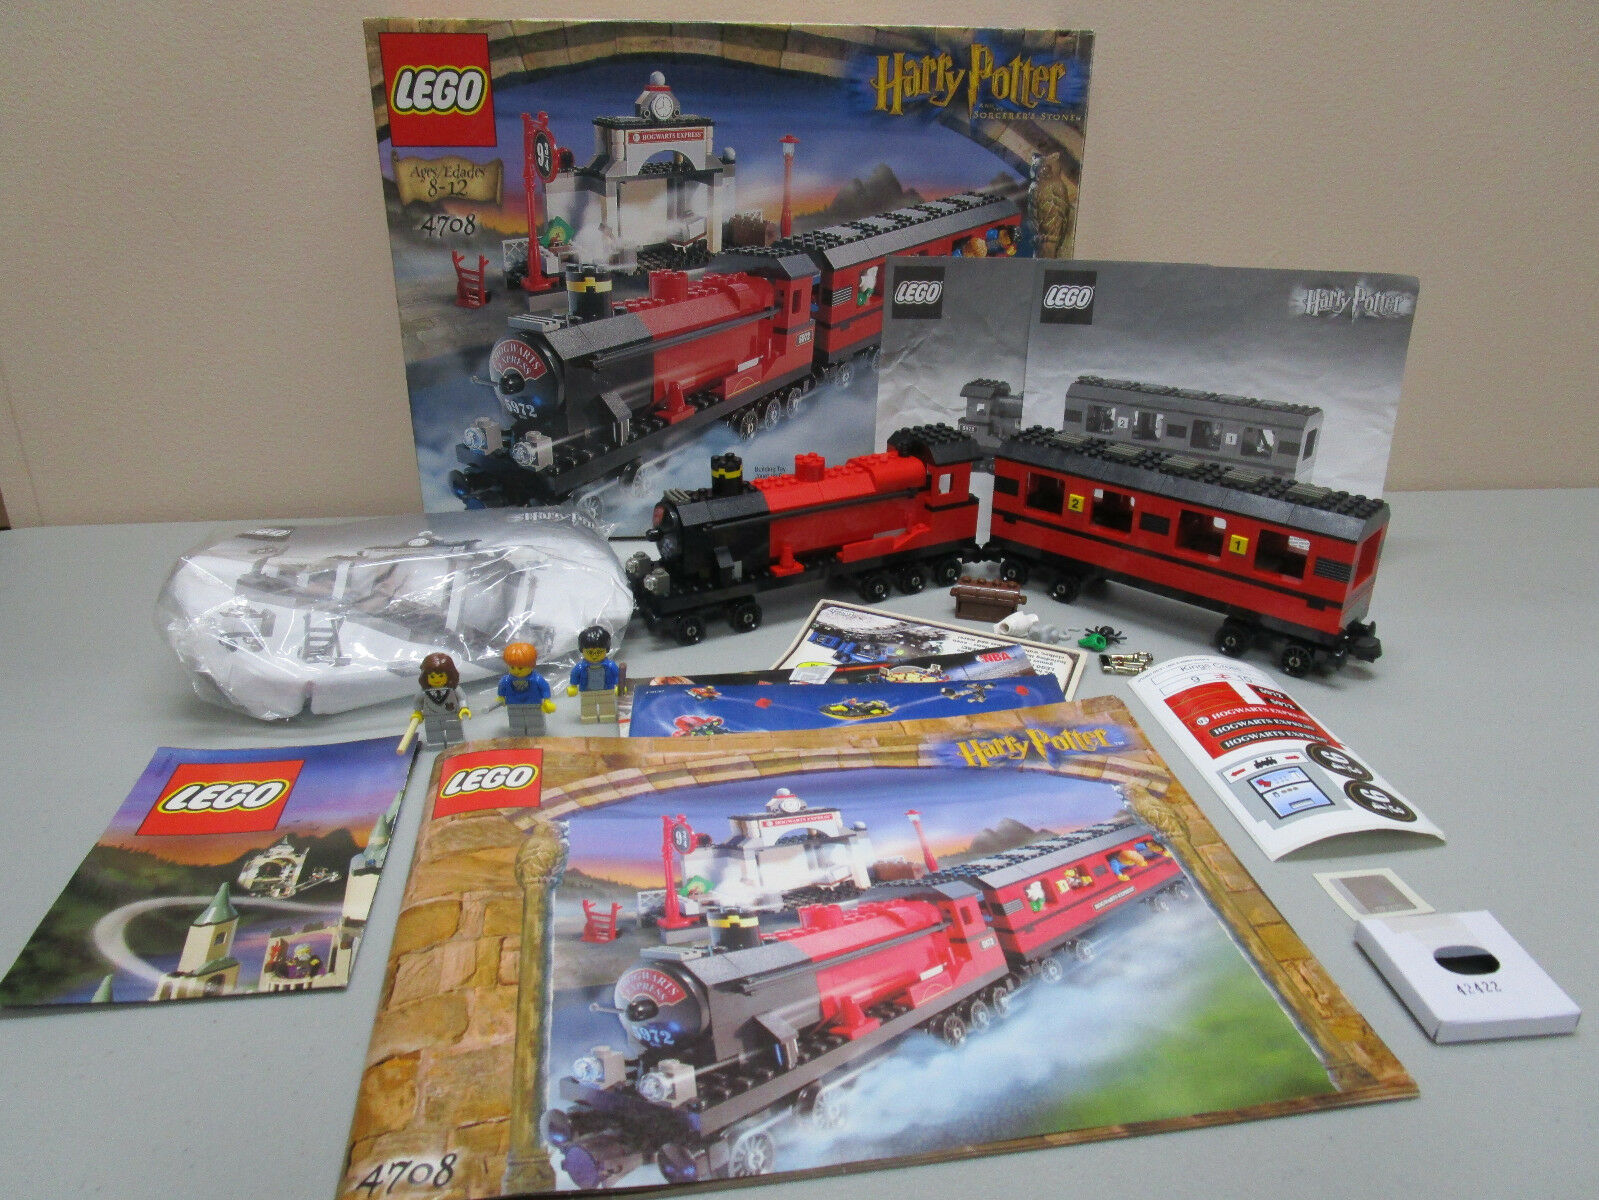 Lego Harry Potter 4708 HOGWARTS EXPRESS TRAIN COMPLETE IN A FACTORY SEAL BAG